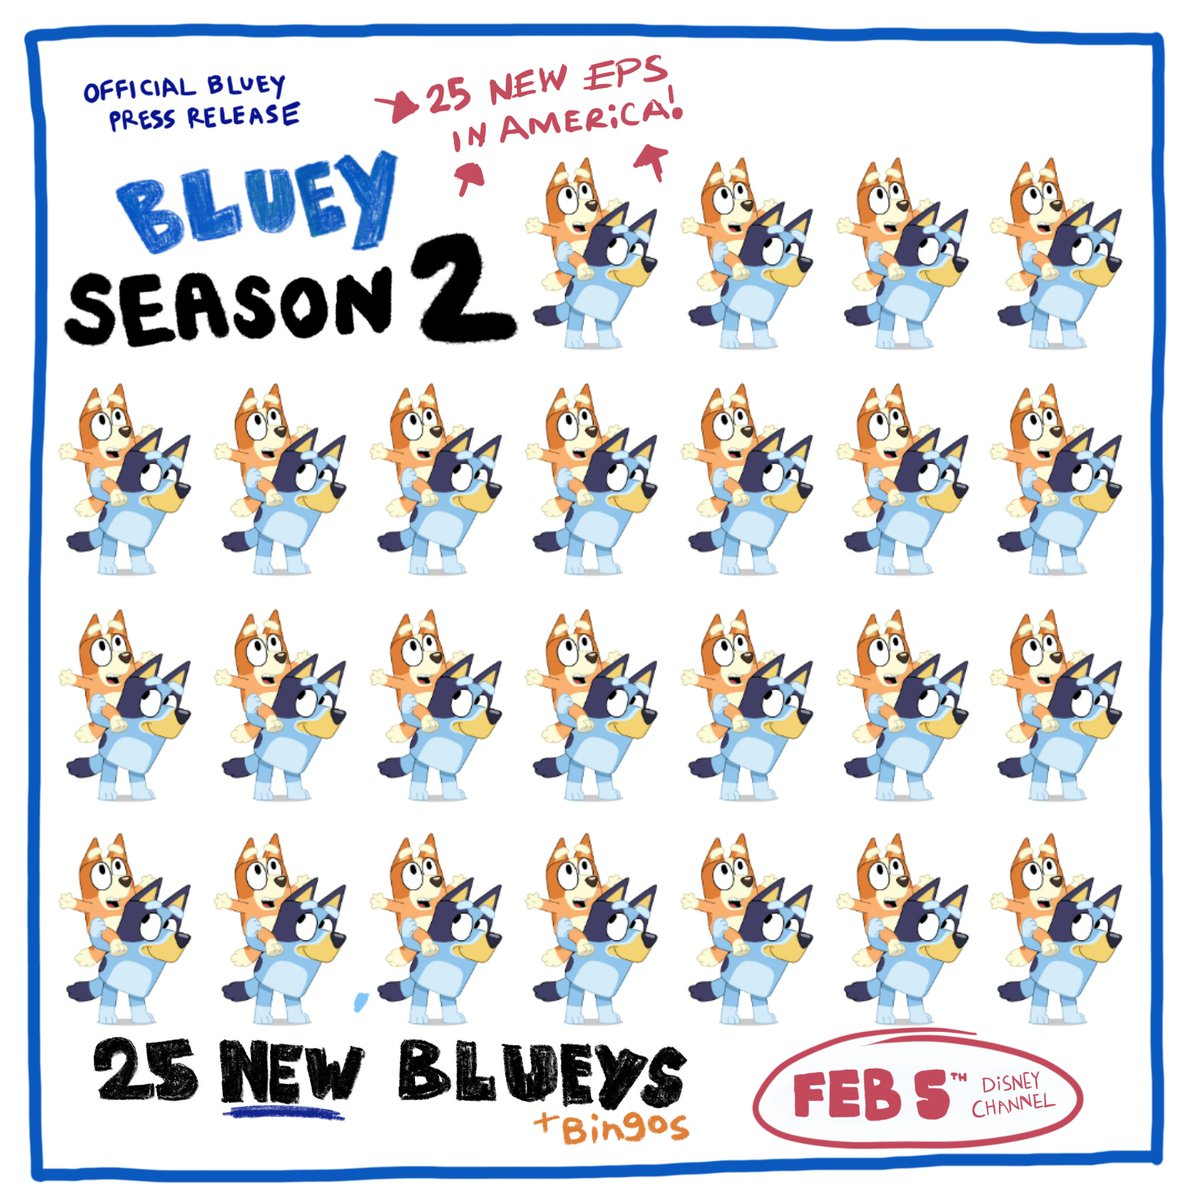 Hey America, get ready for more Bluey 🇺🇸💙  New episodes start February 5th on @DisneyChannel